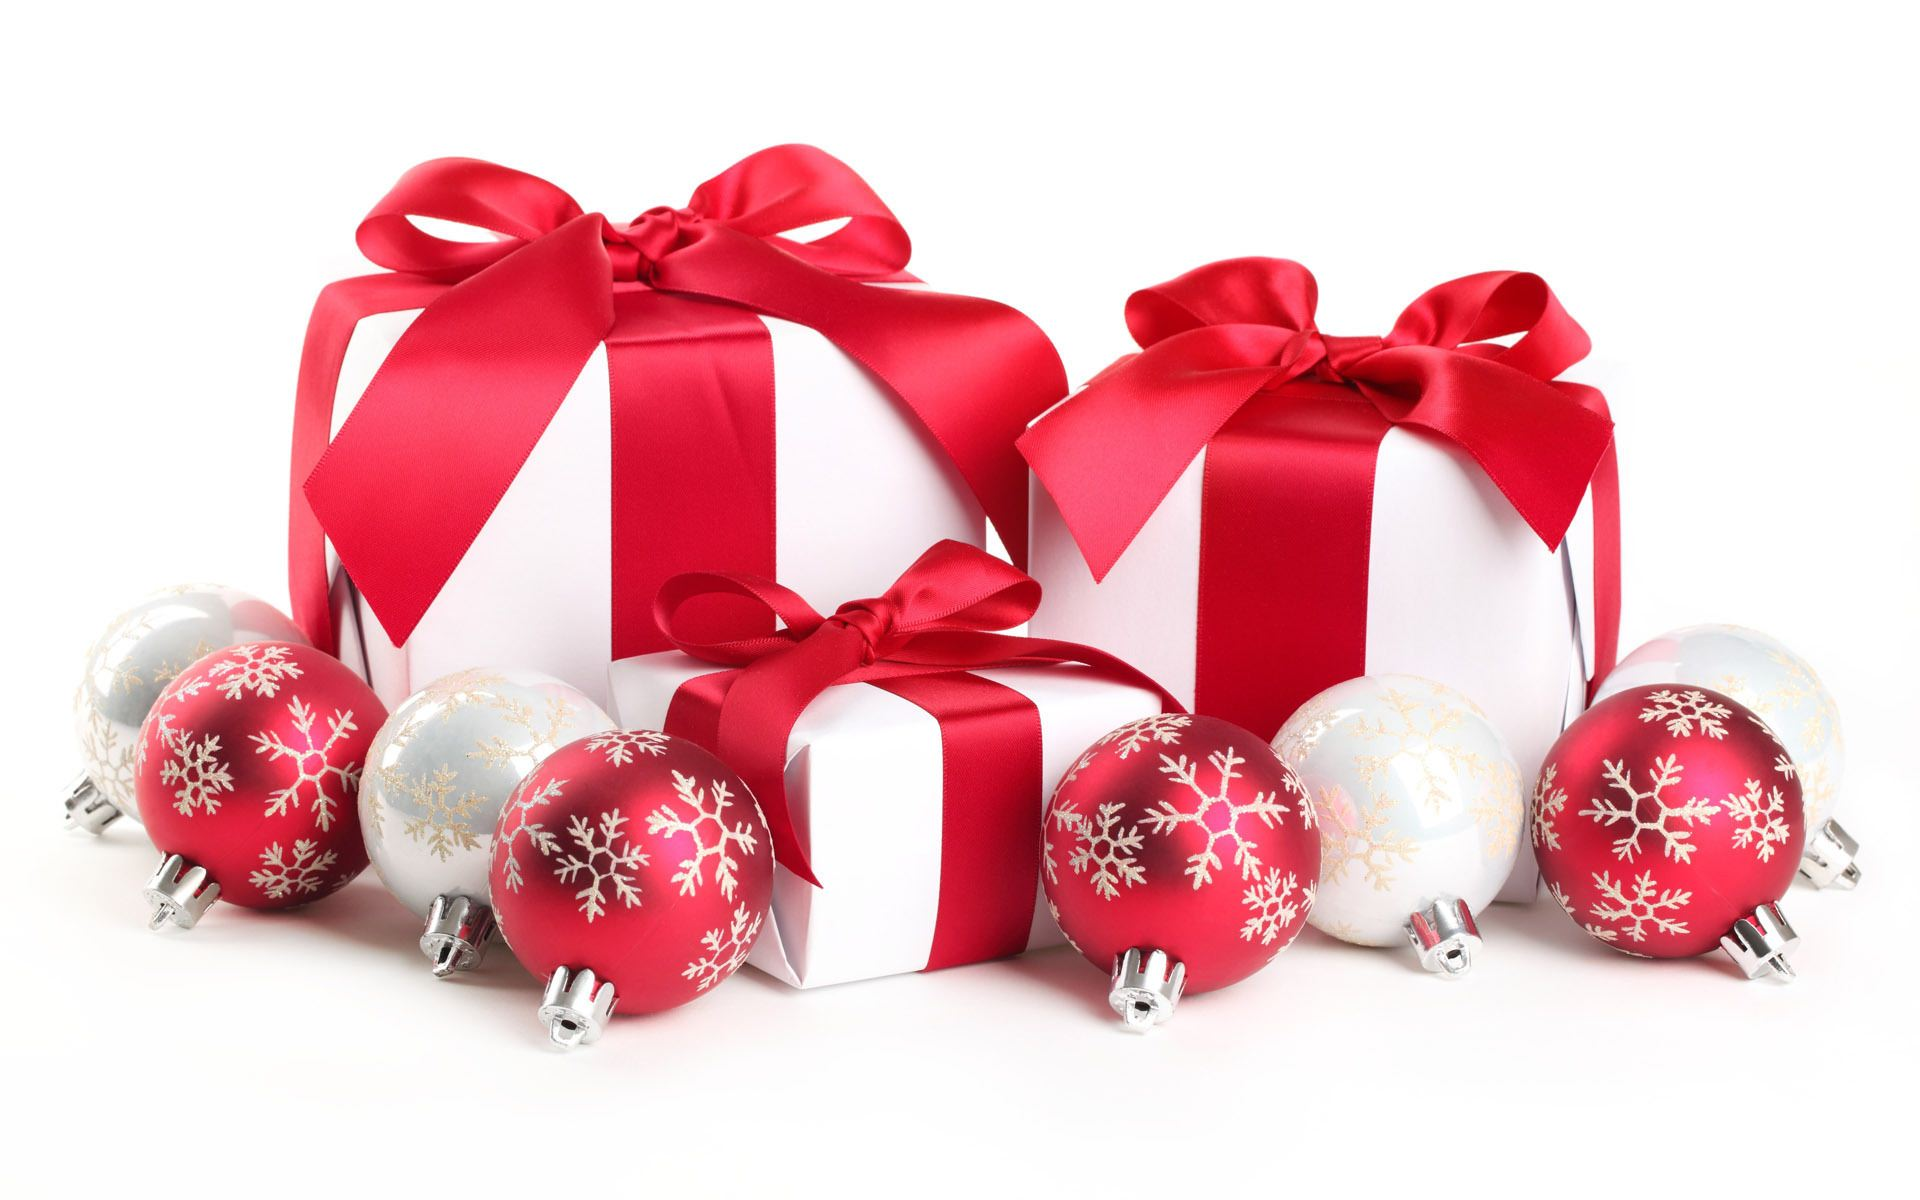 Holiday Gifts Backgrounds